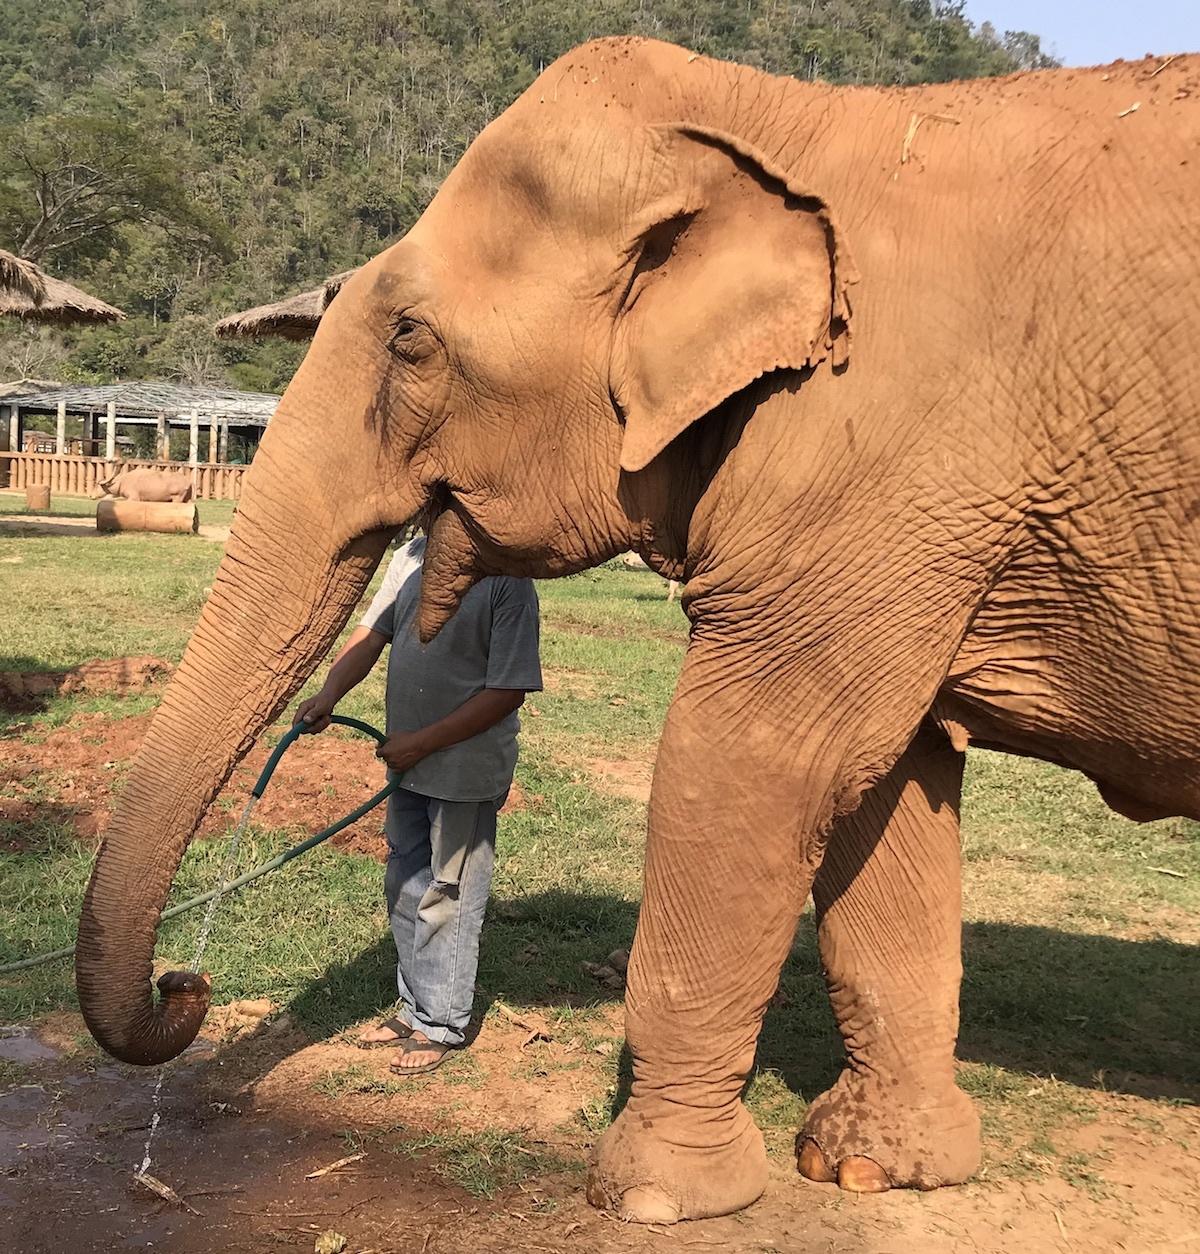 Watering the Elephant Trunk